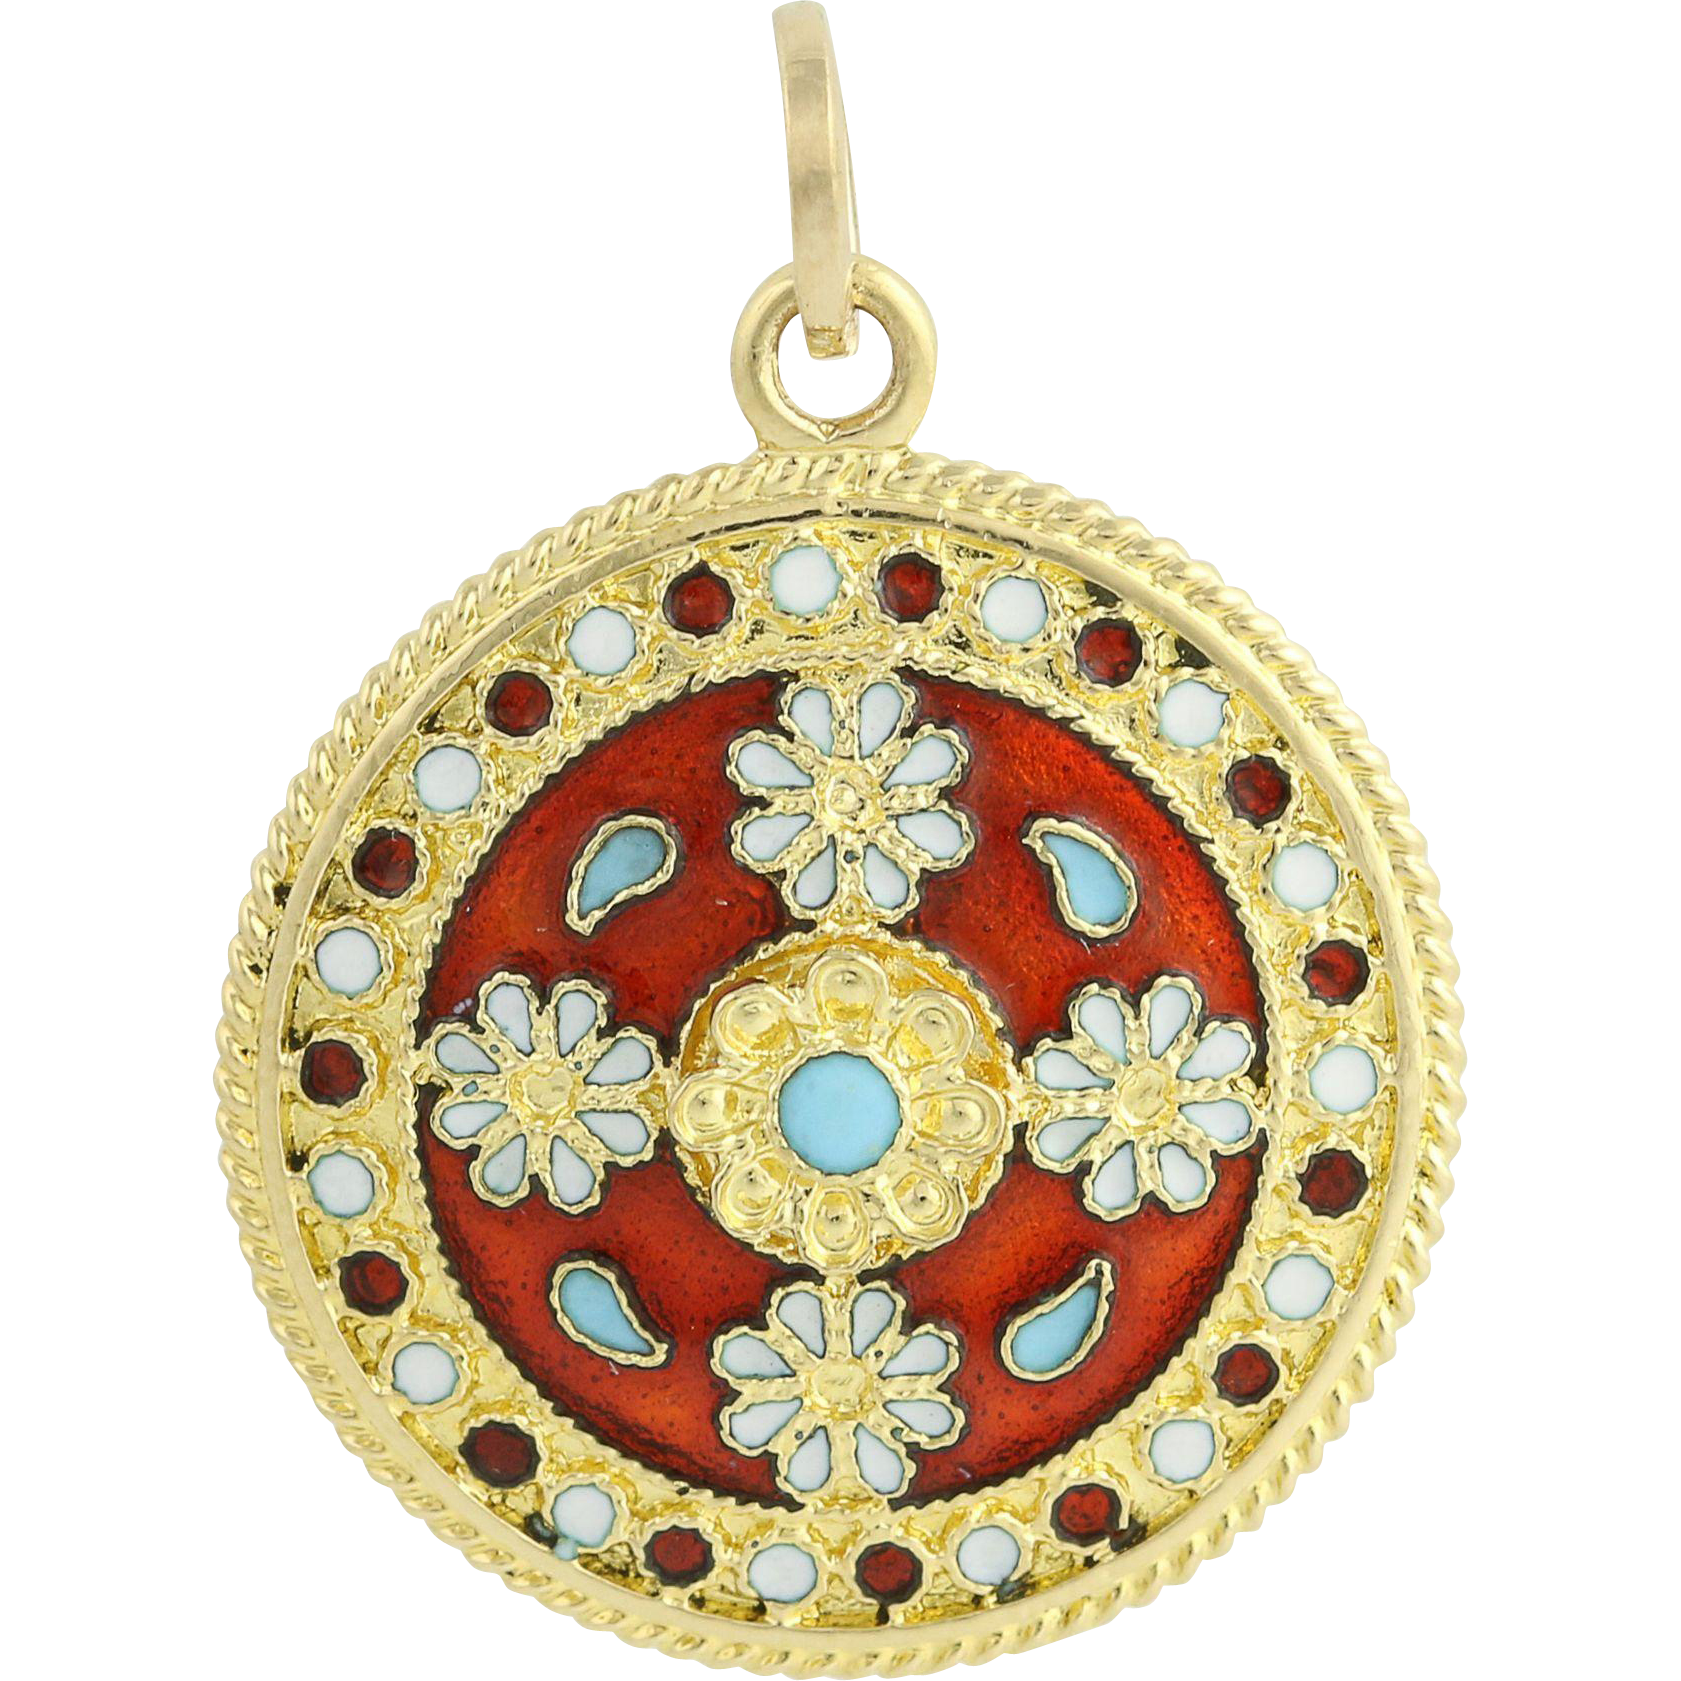 Ornate Enameled Pendant - 18k Yellow Gold Multi-Colored Floral